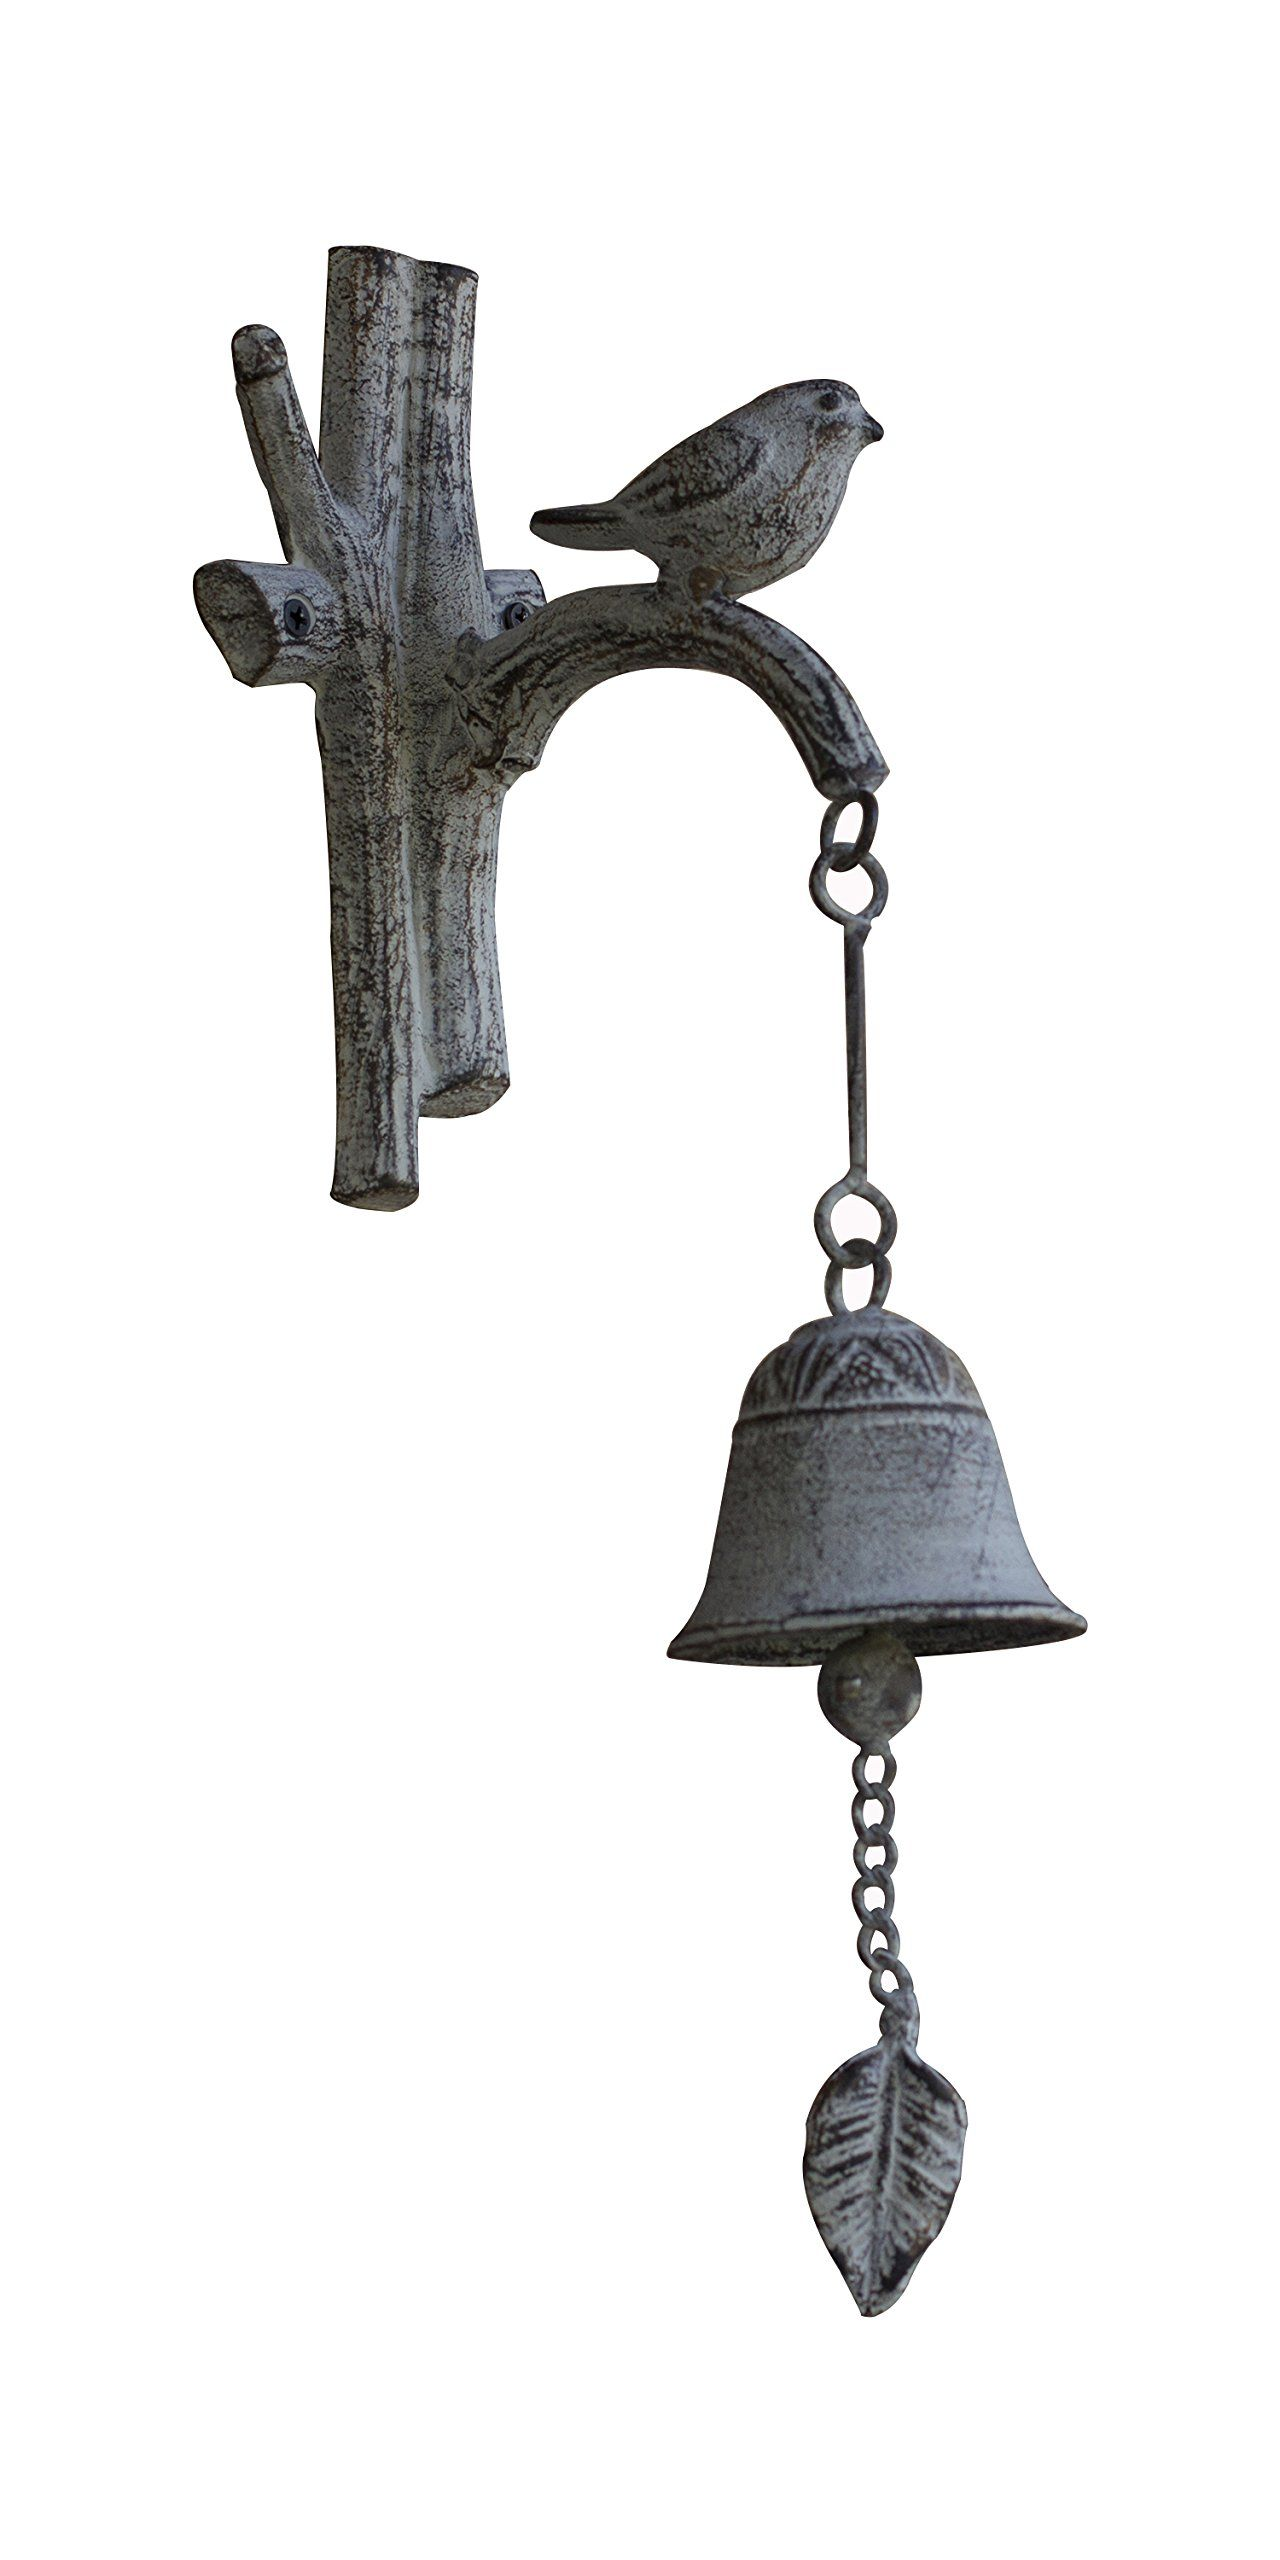 Cast Iron Wall Mount Bell with Geese Indoor or Outdoor